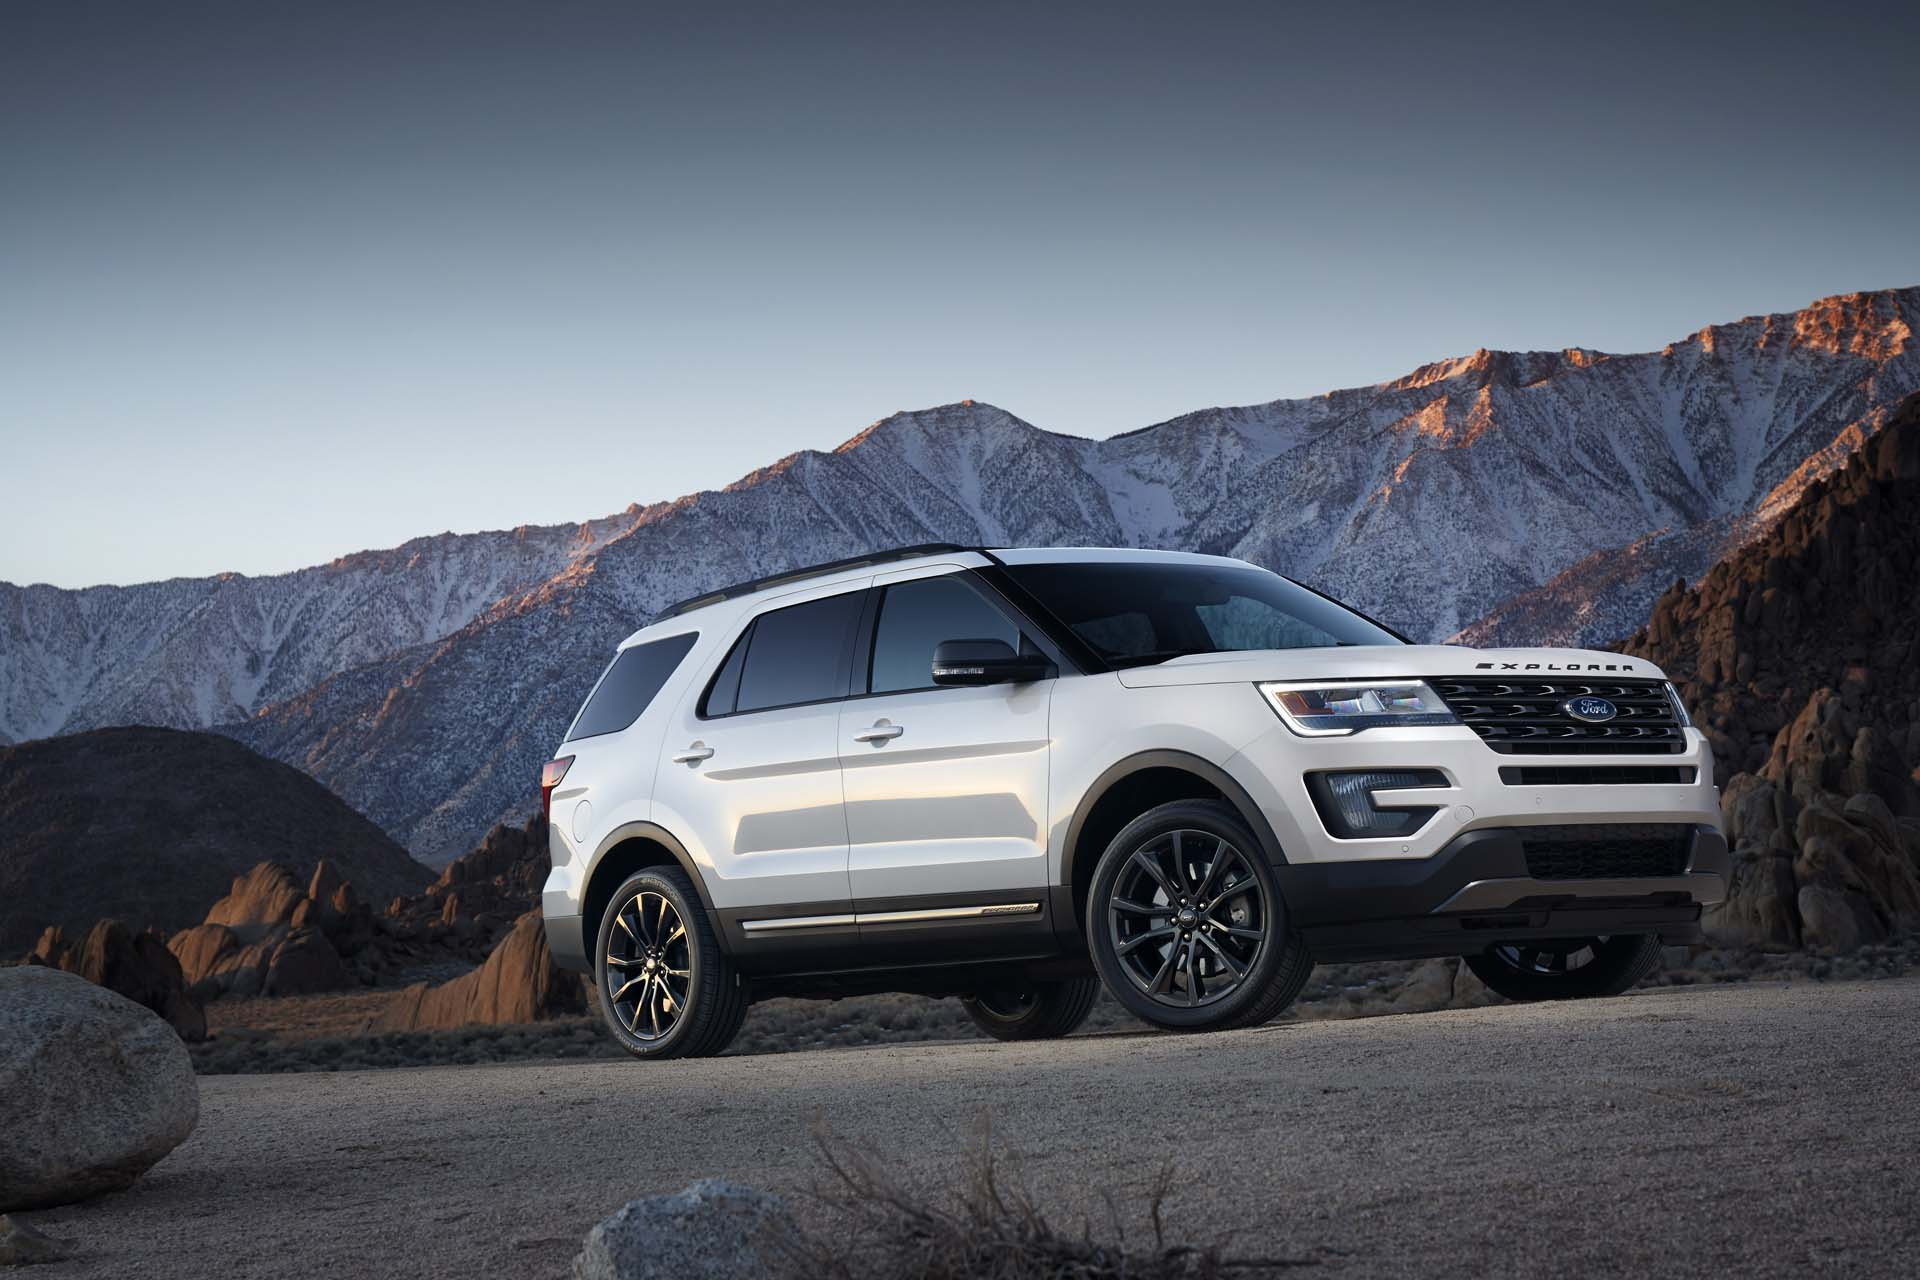 2017 Ford Explorer Review, Ratings, Specs, Prices, and ...